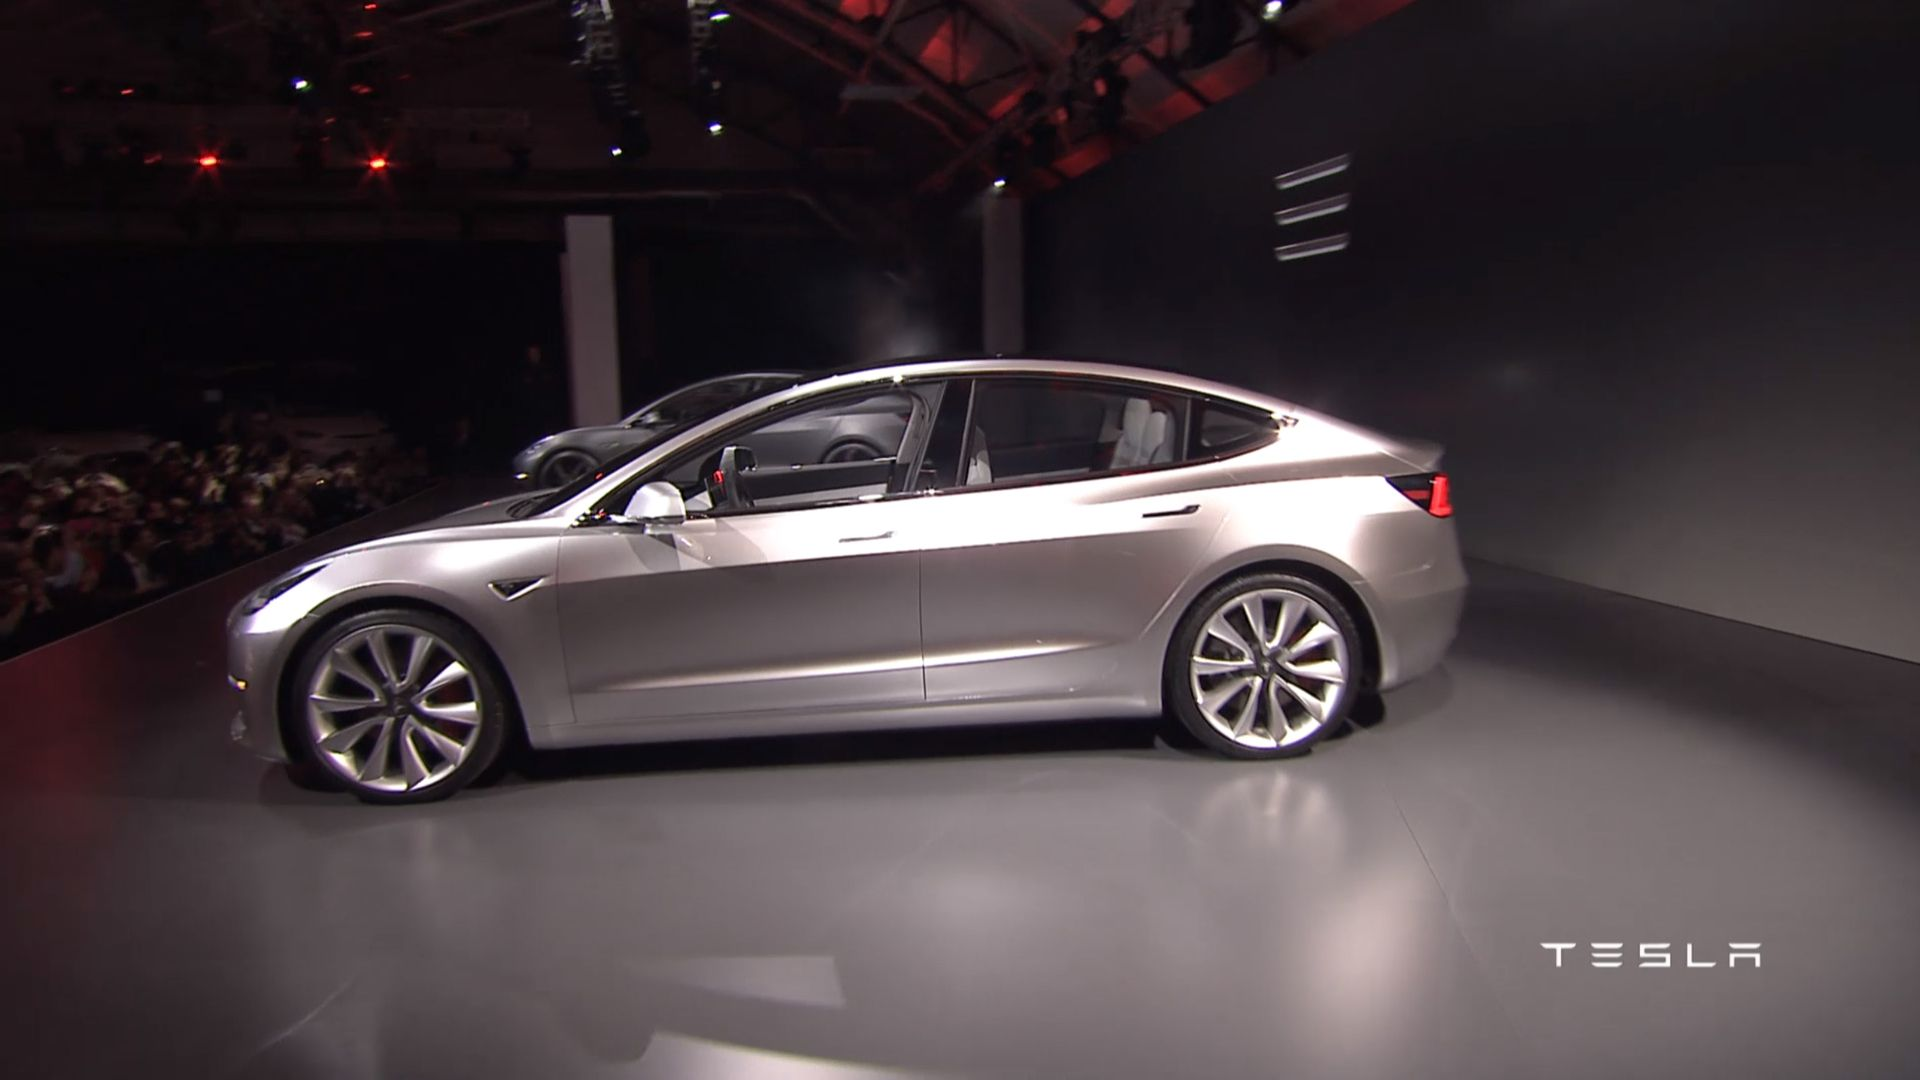 Tesla Model Gets Rendered In Dozens Of Colors Looks Good In All - All tesla cars